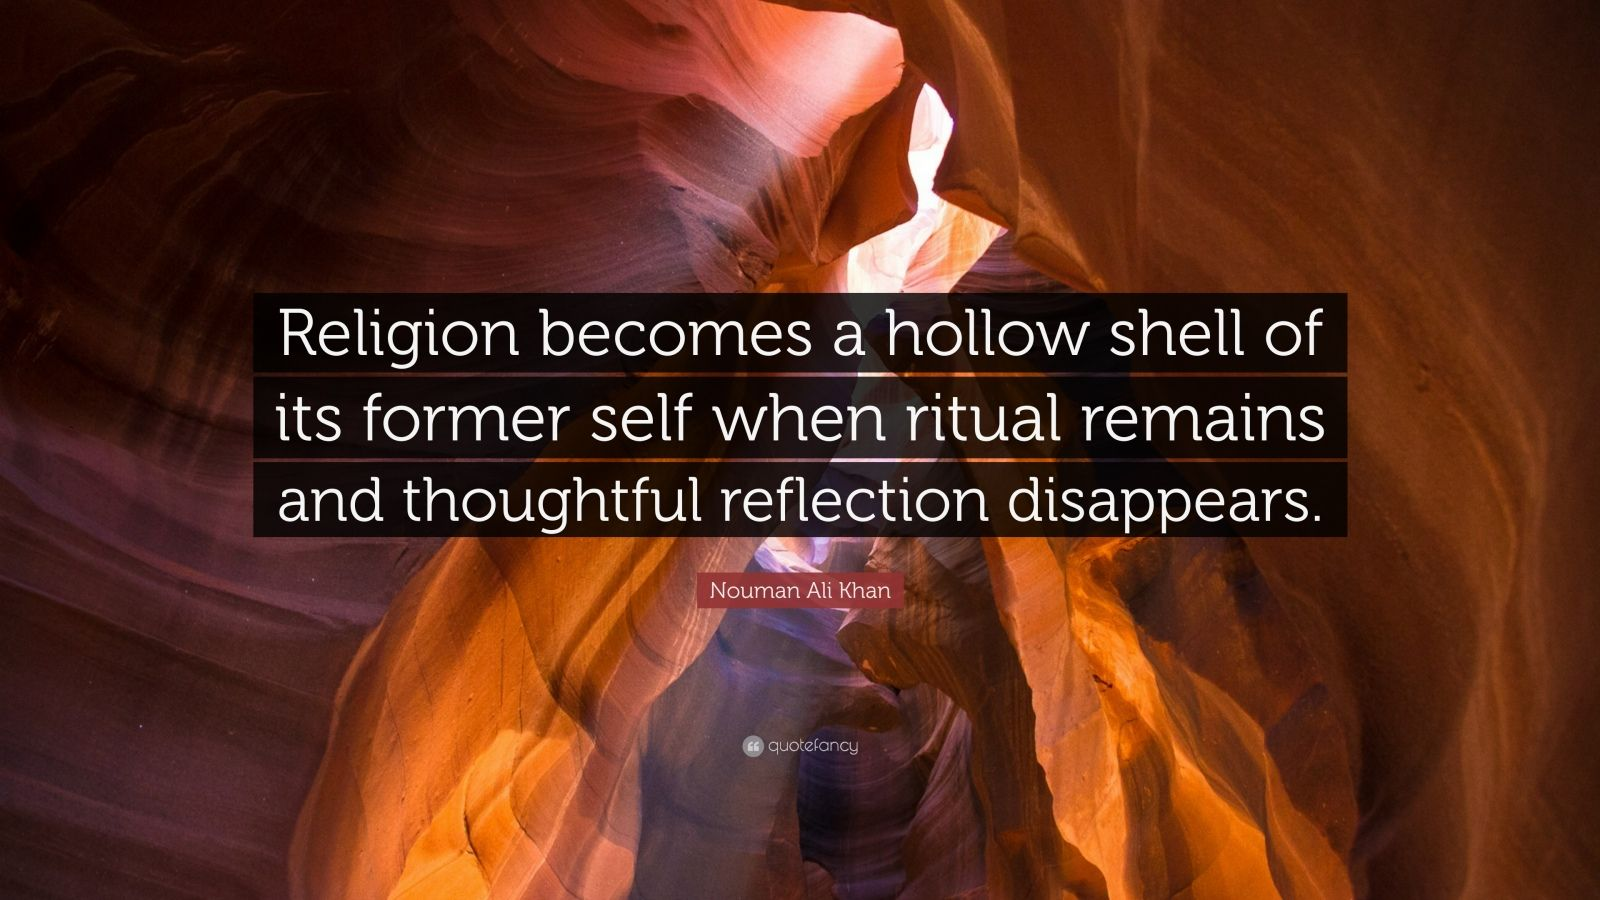 """Nouman Ali Khan Quote: """"Religion becomes a hollow shell of its former self when ritual remains and thoughtful reflection disappears."""""""